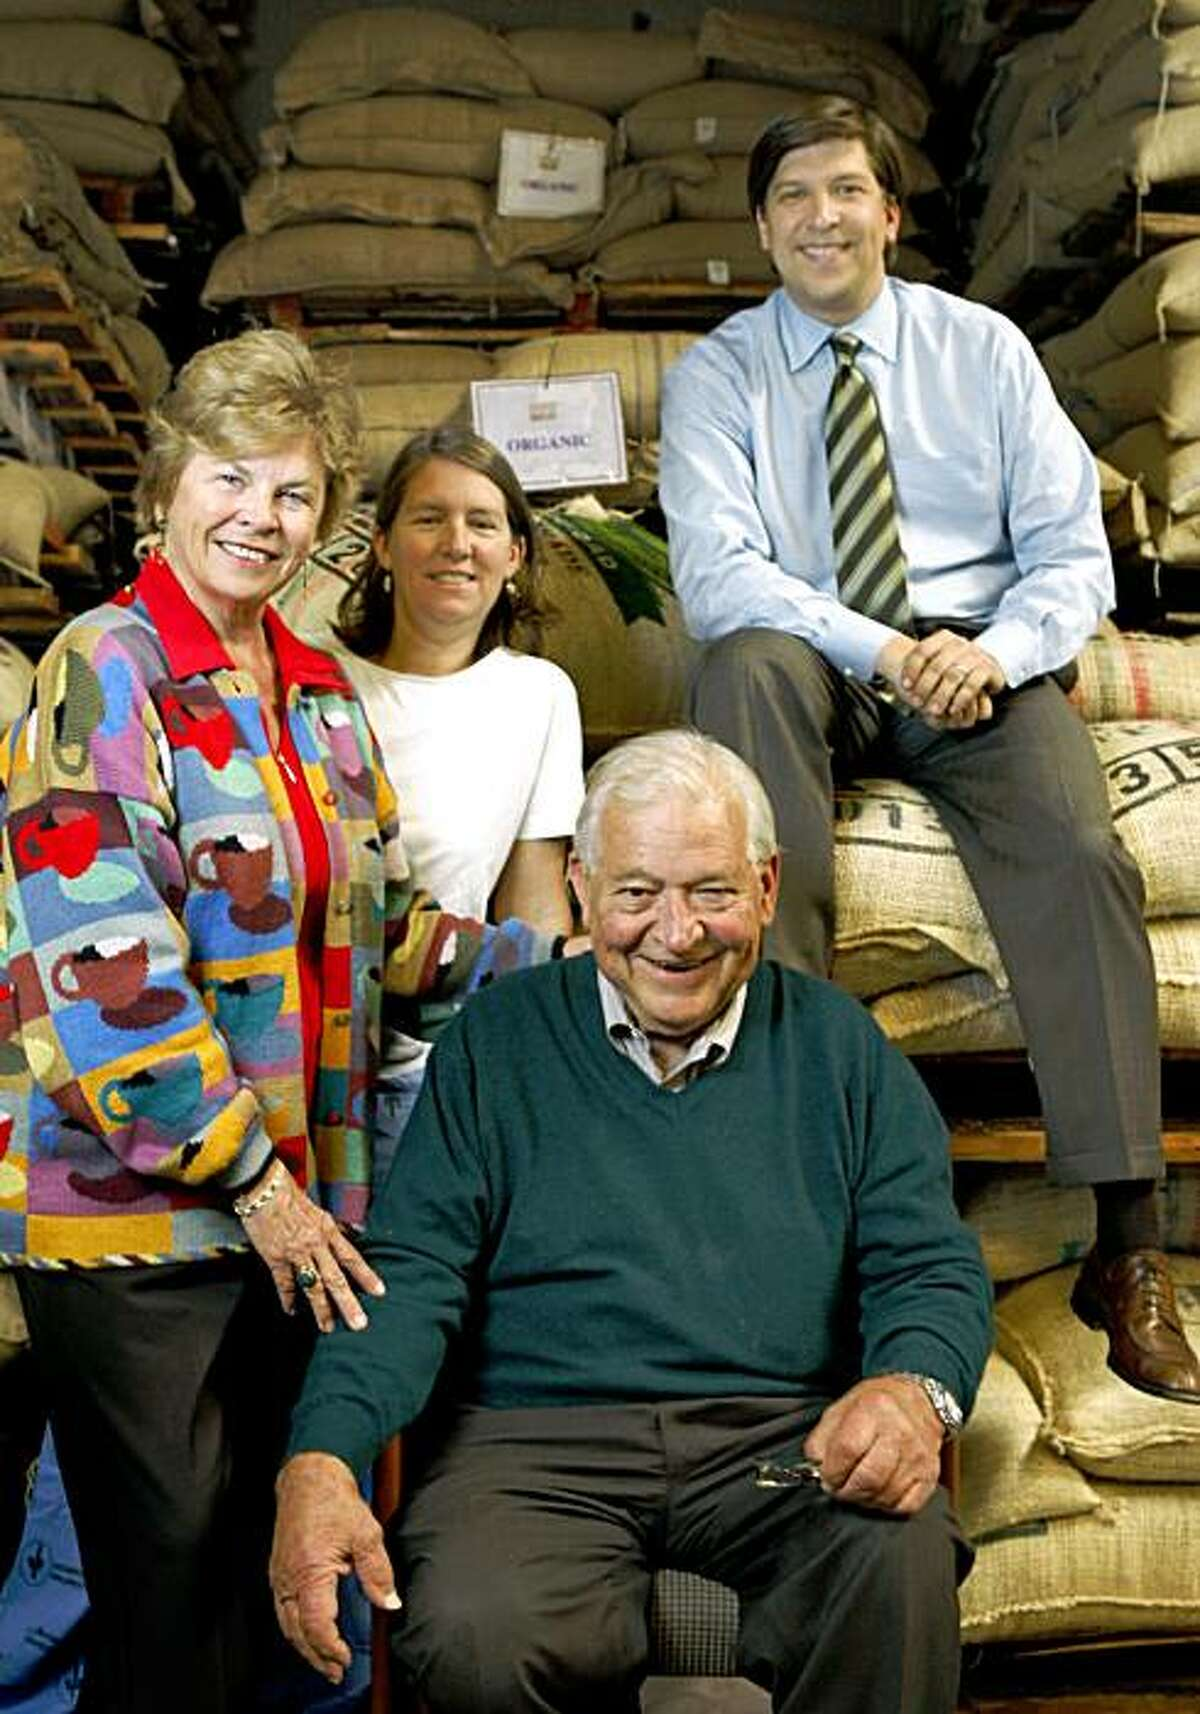 George Vukasin Sr.,  is joined in the Oakland warehouse by his family, wife Sonja Vukasin, daughter Kristina Vukasin-Brouhard and son, George Vukasin Jr Friday Oct. 30, 2009.